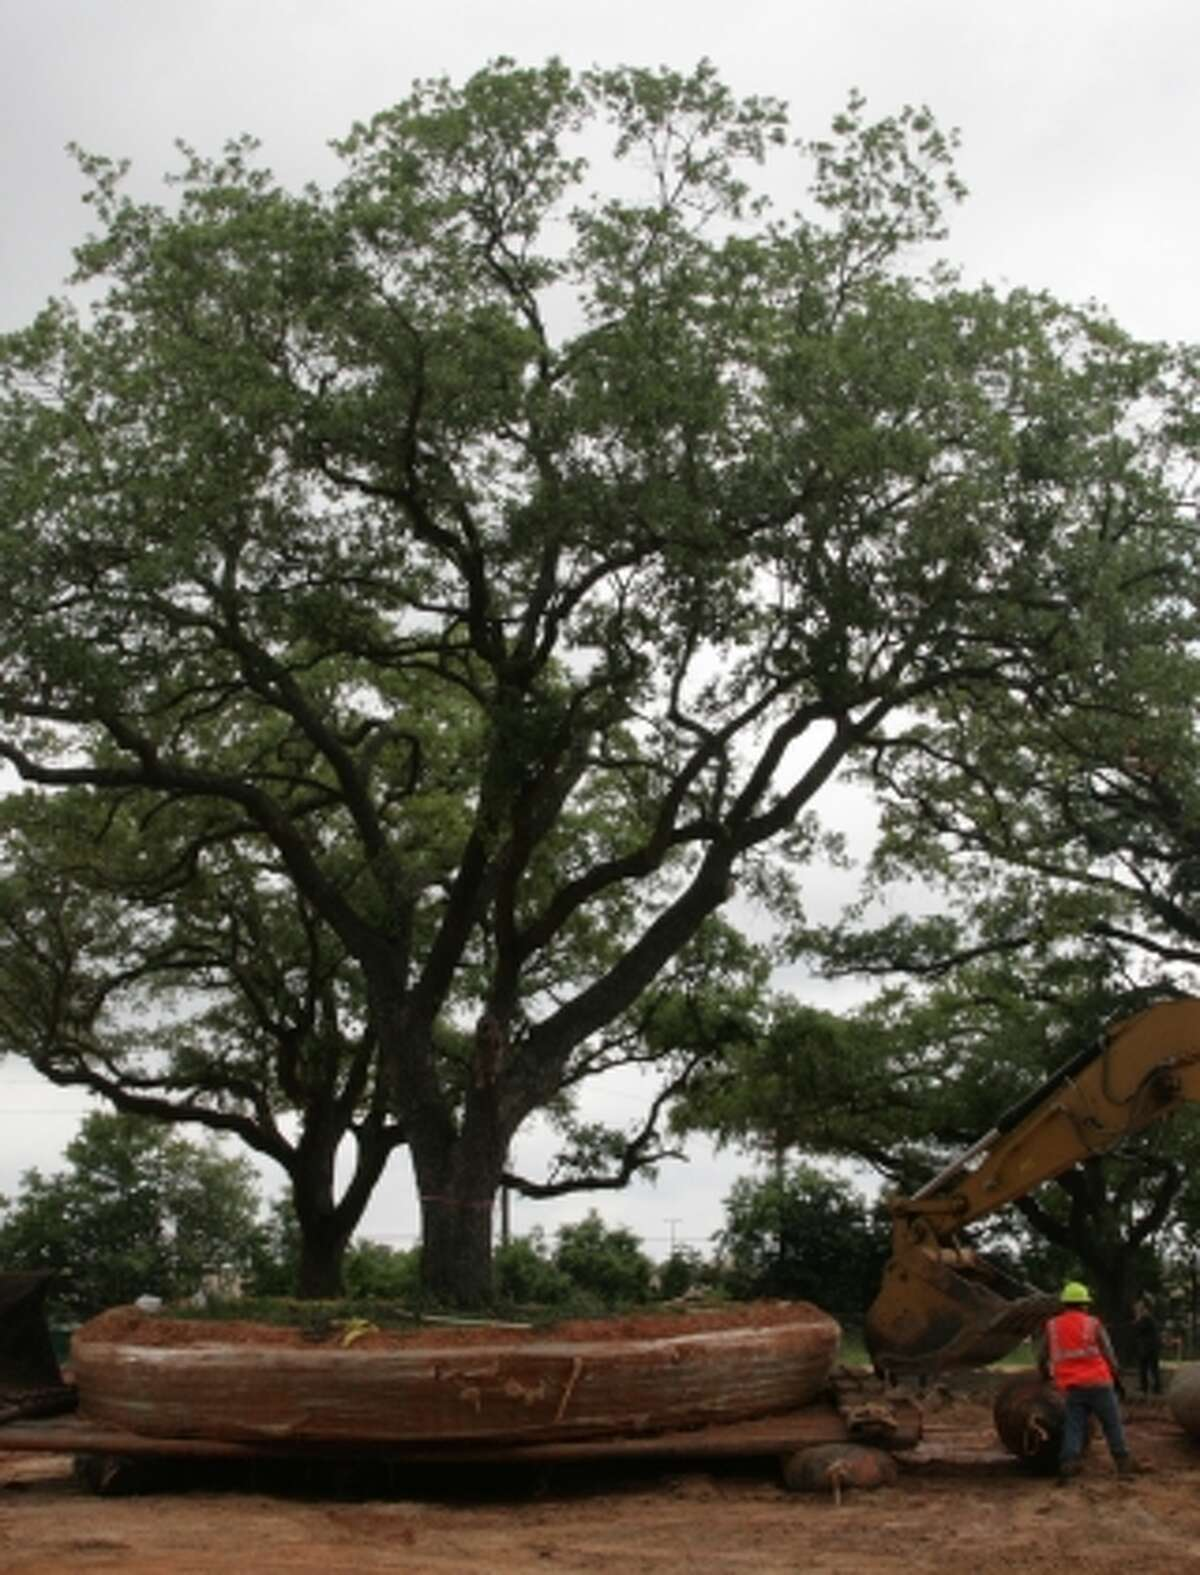 Two century-old, 60-foot tall live oak trees were relocated to make way for the Wildwood Corporate Centre II office building at 480 Wildwood Forest in Spring.